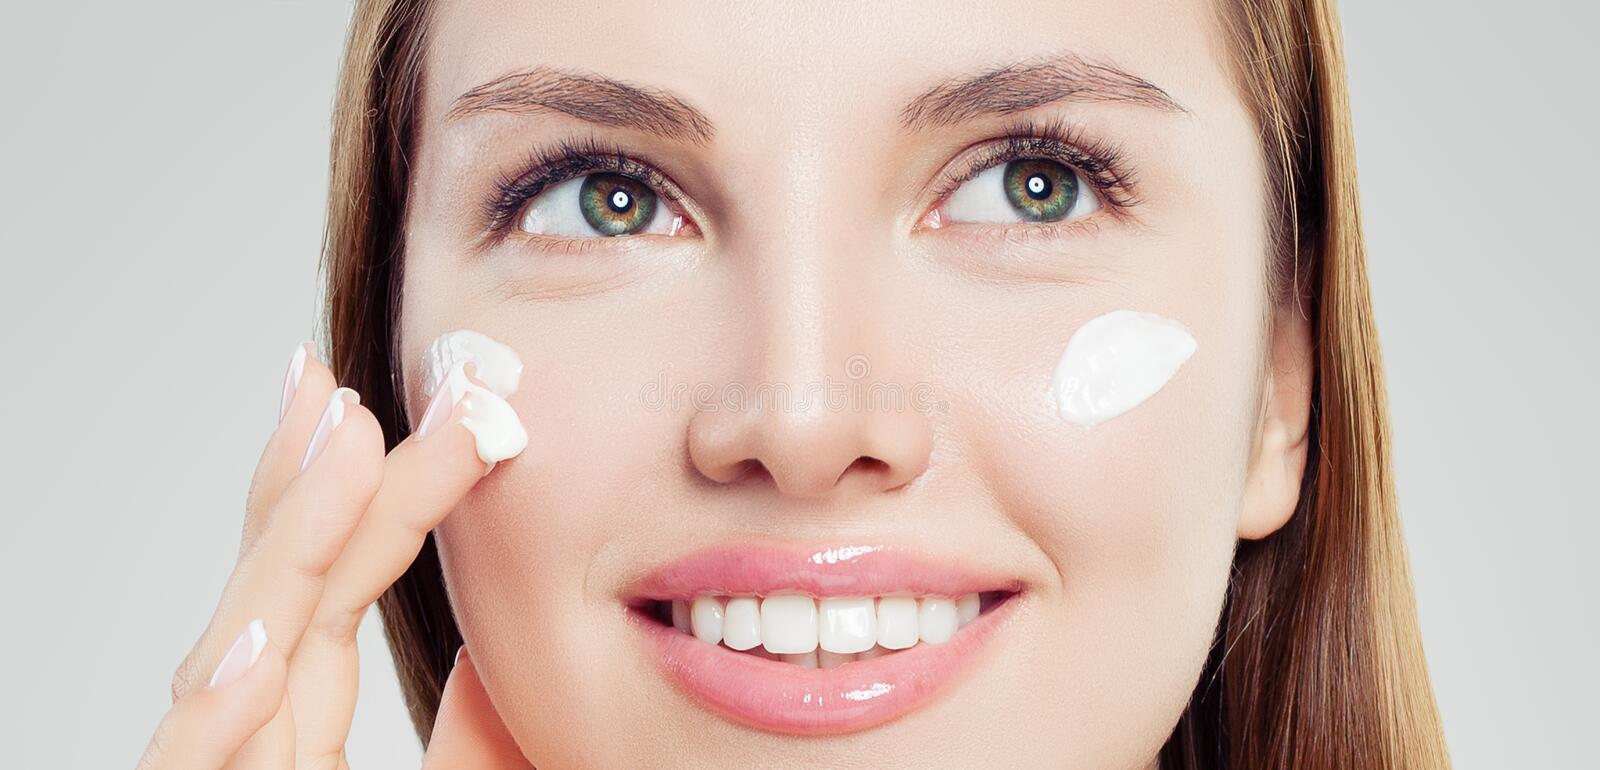 Attractive woman with healthy skin applying cosmetic cream, face closeup. Skincare, beauty and facial treatment concept royalty free stock photography